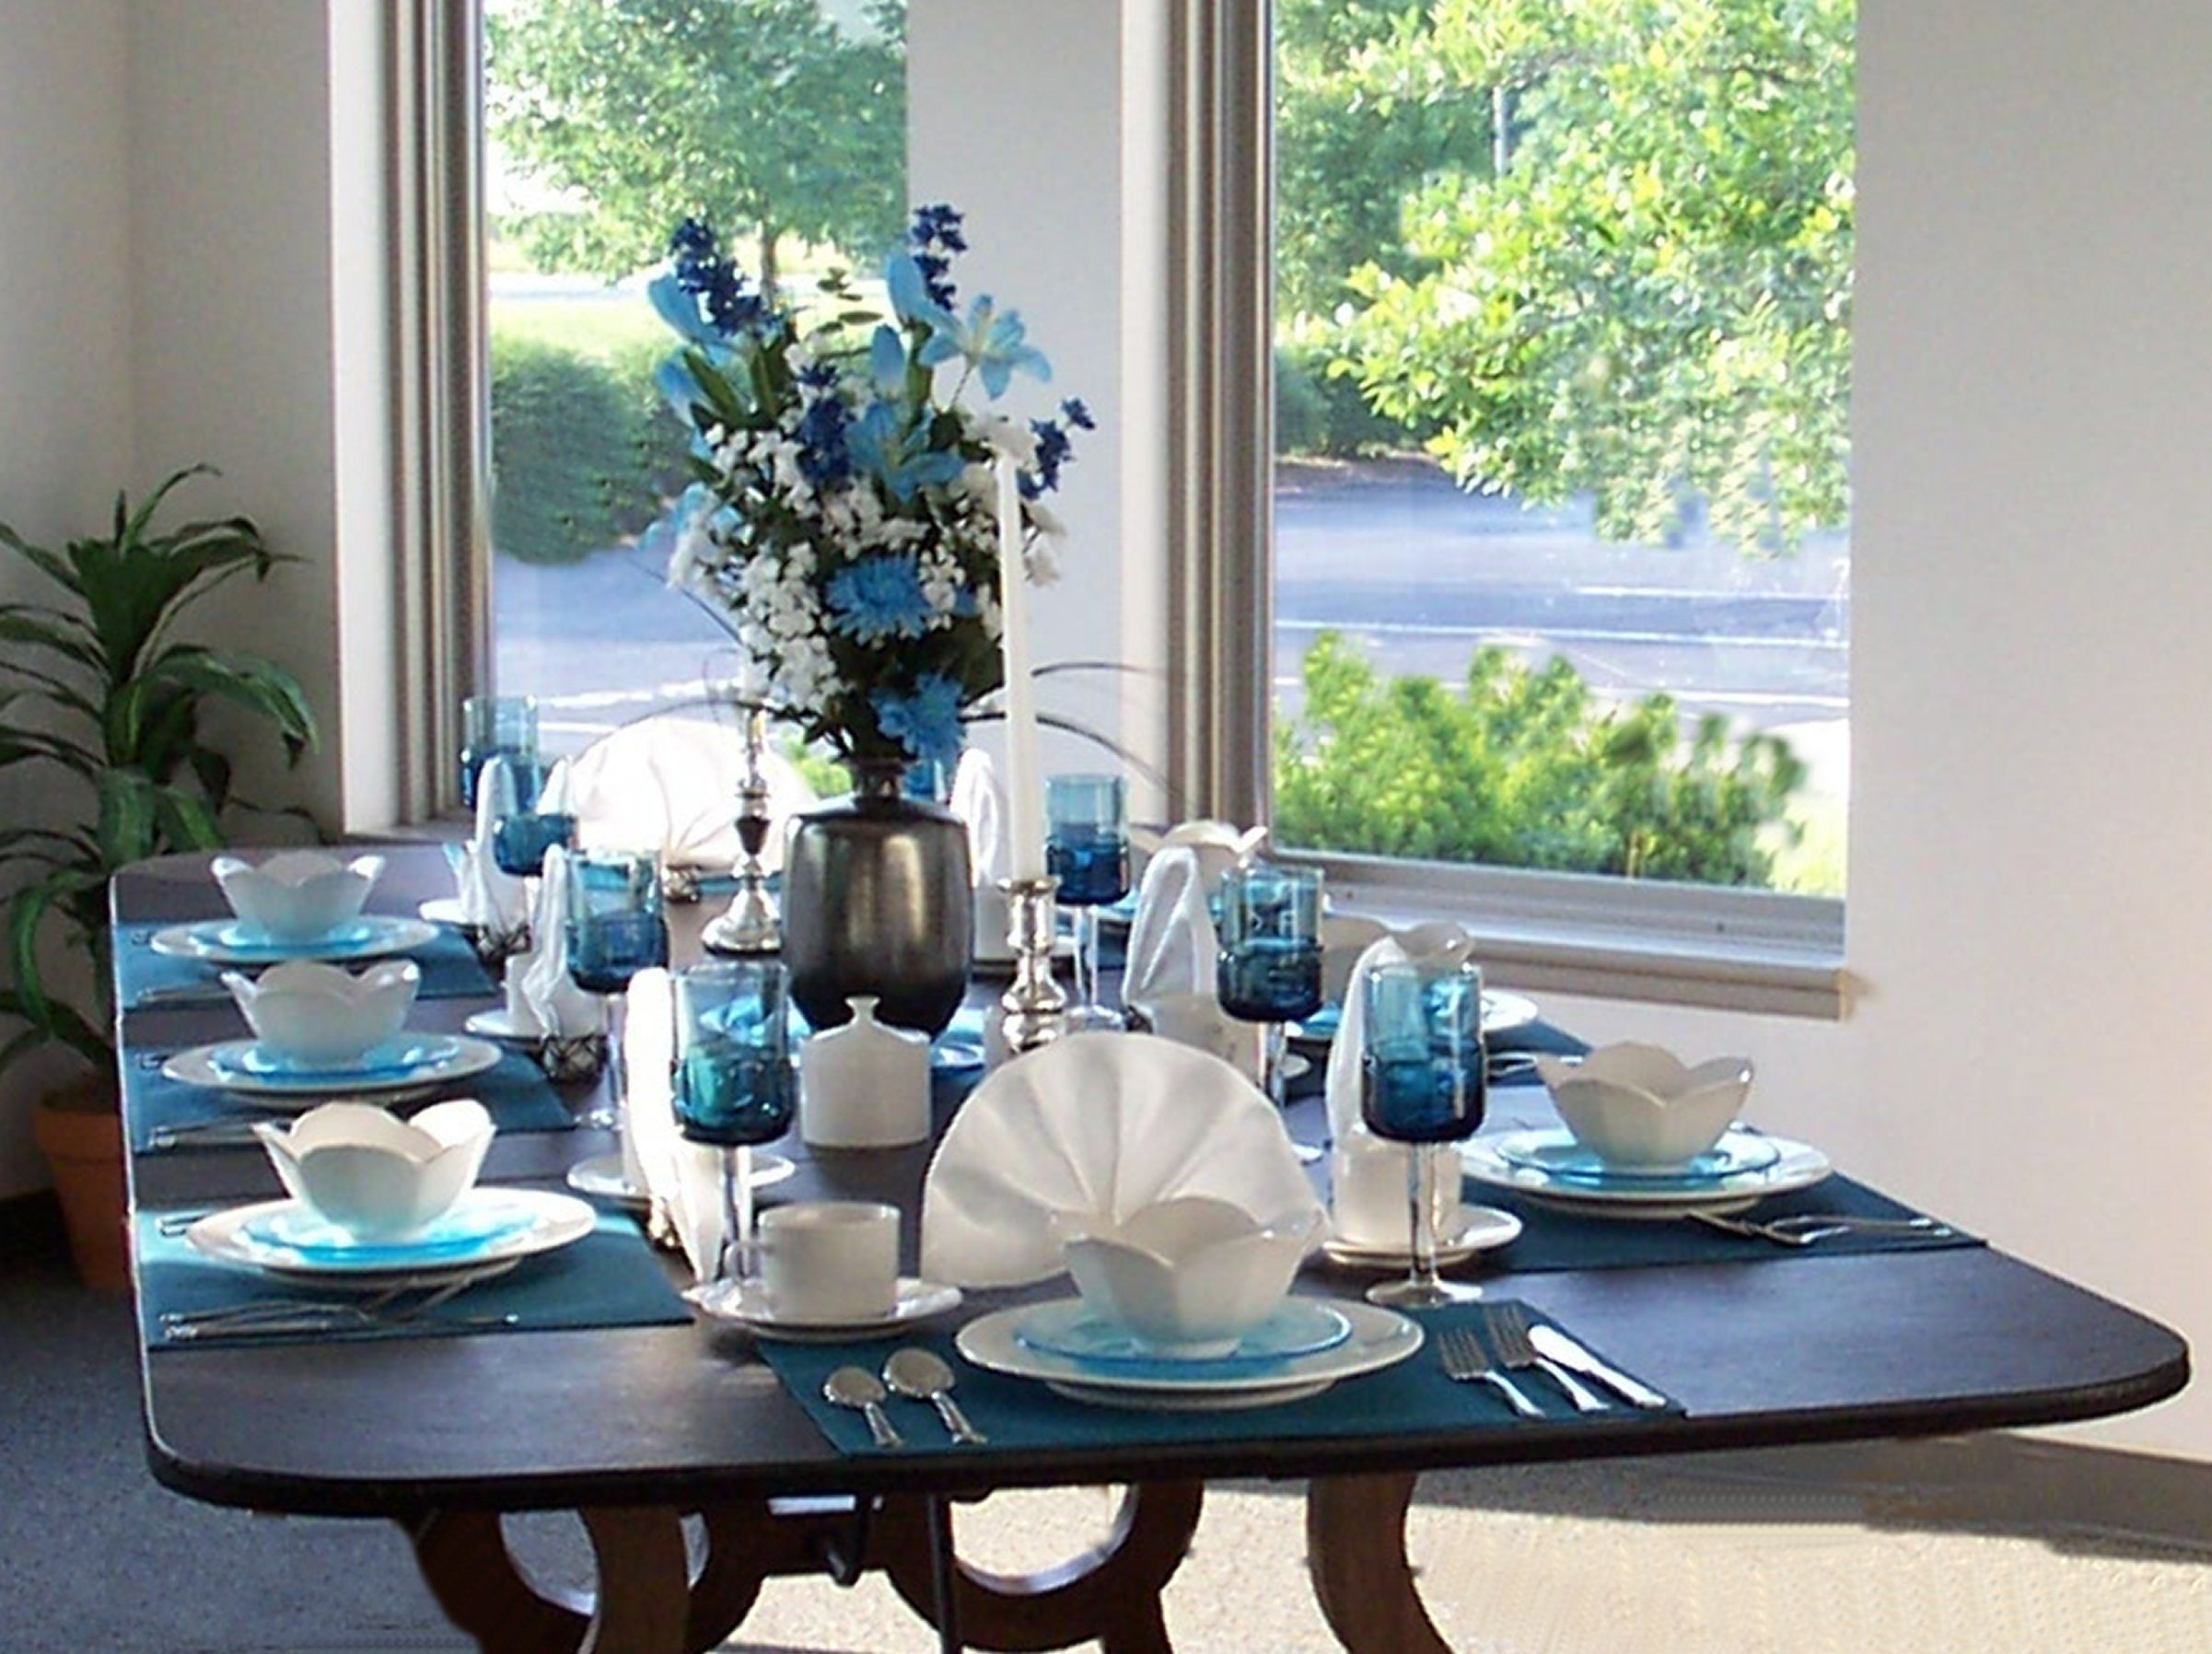 Table With Extension Pads Seats 8 Comfortably Dining Room Blue Dining Room Table Decor Decor